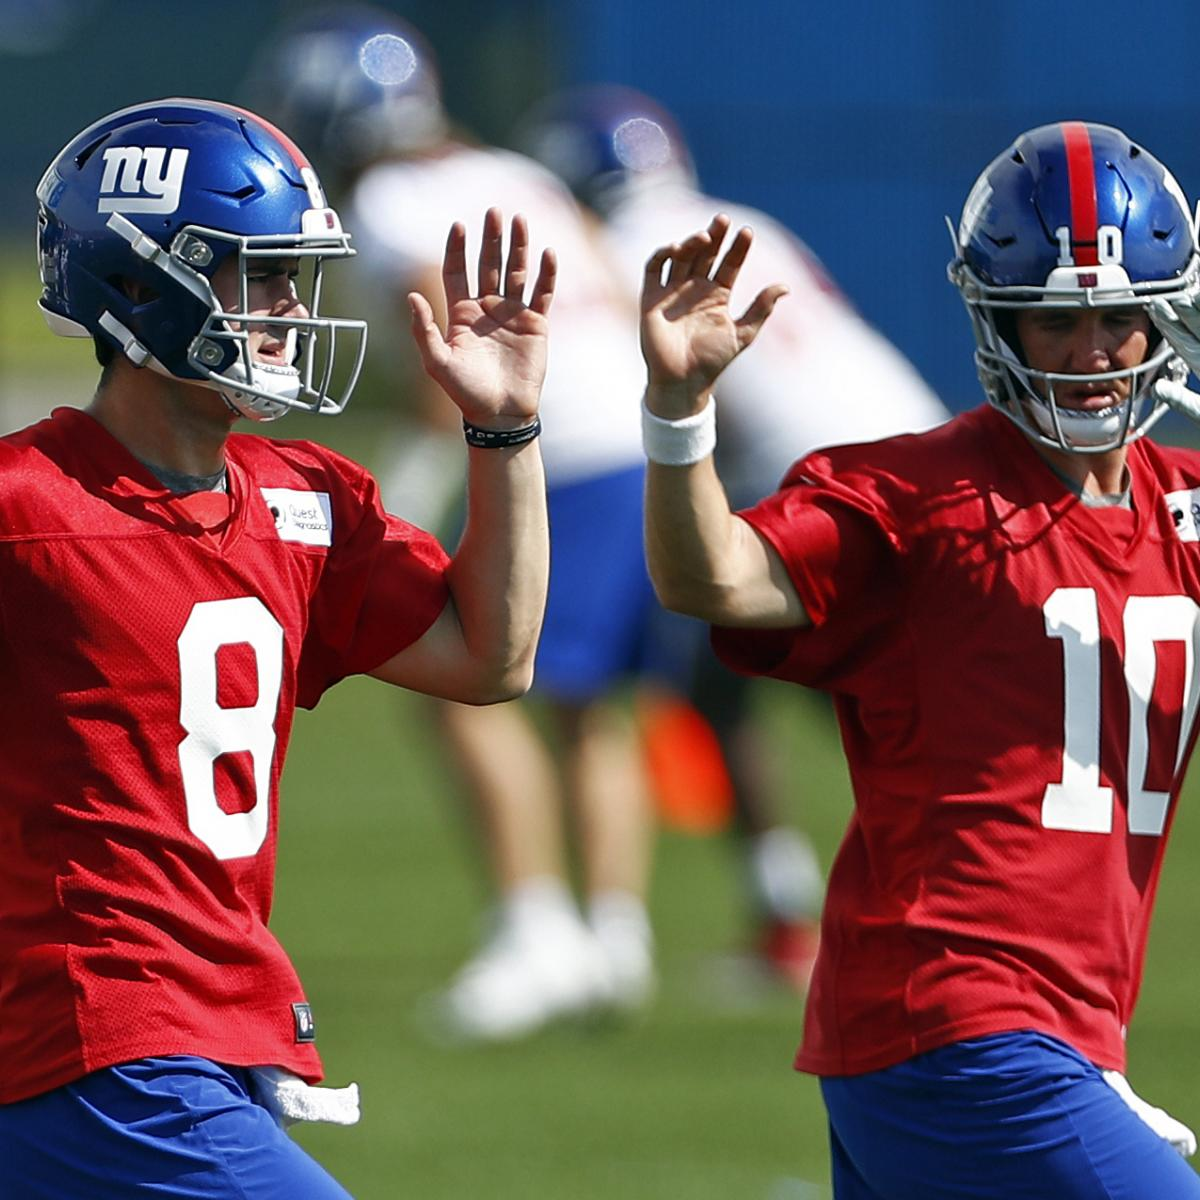 Rookies 2019: Setting Expectations For Rookie NFL Quarterbacks In 2019